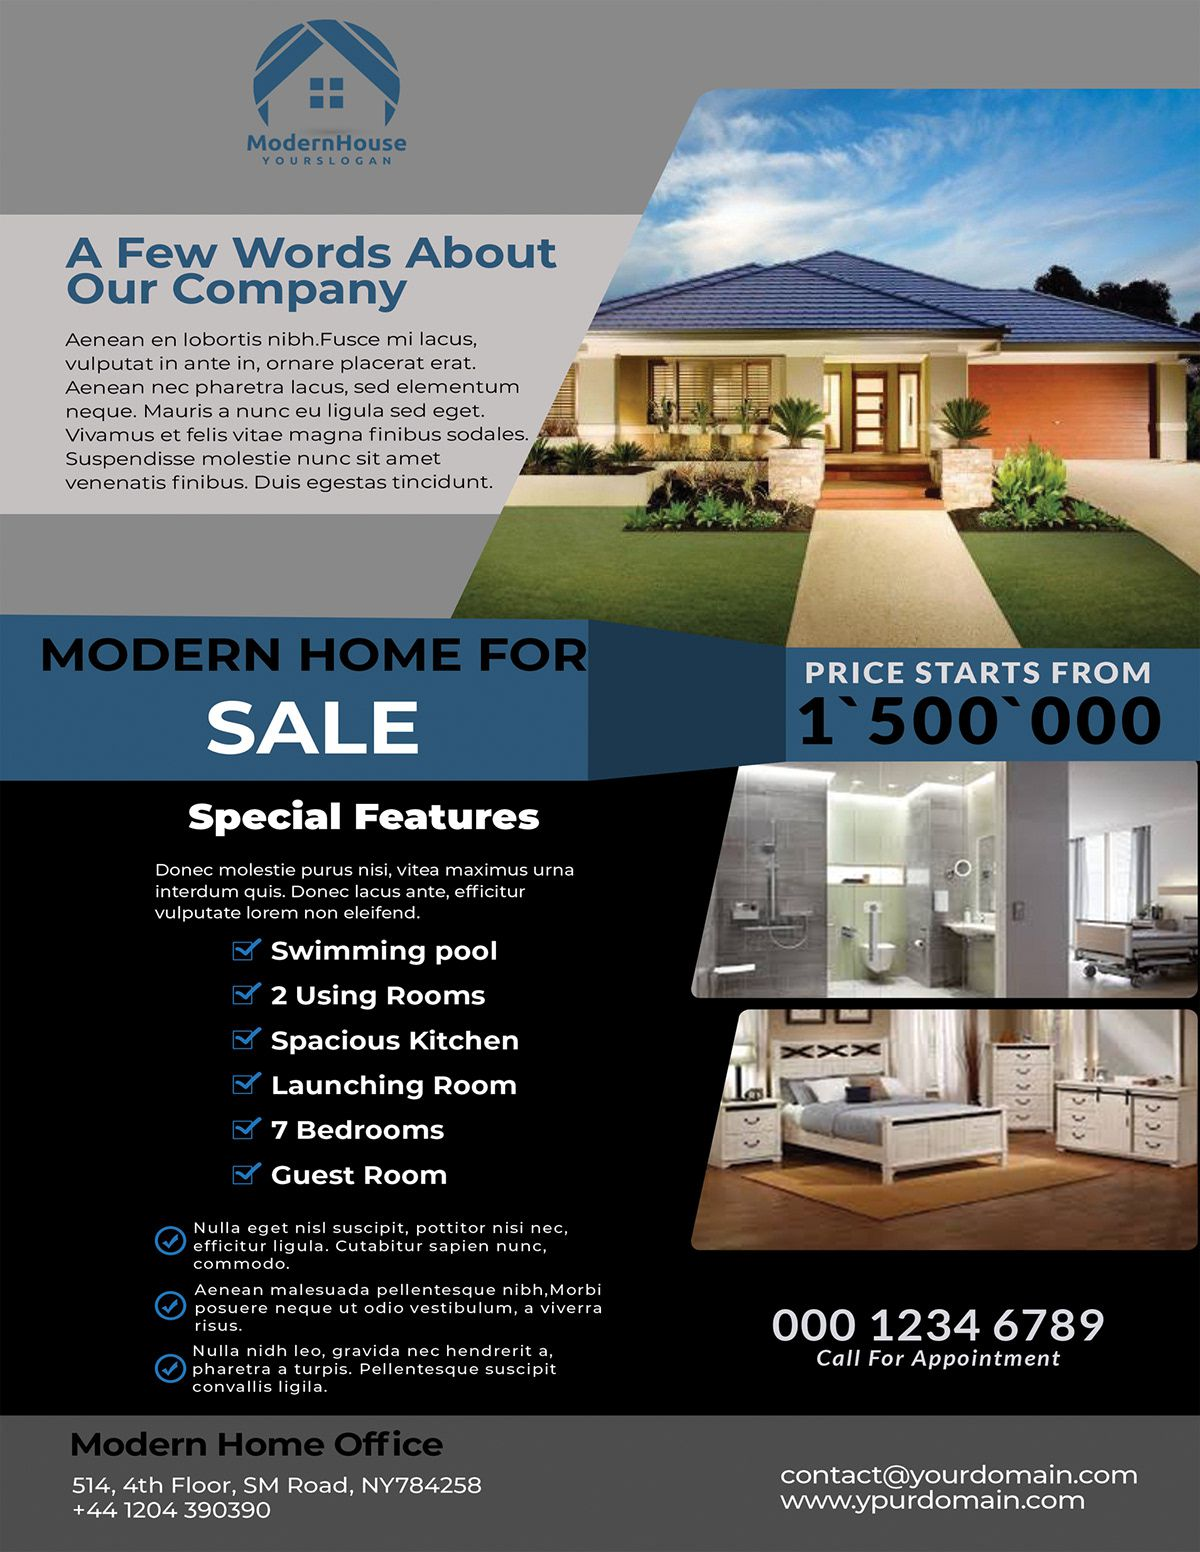 001 Dreaded For Sale Flyer Template Image  Car Ad Microsoft Word HouseFull